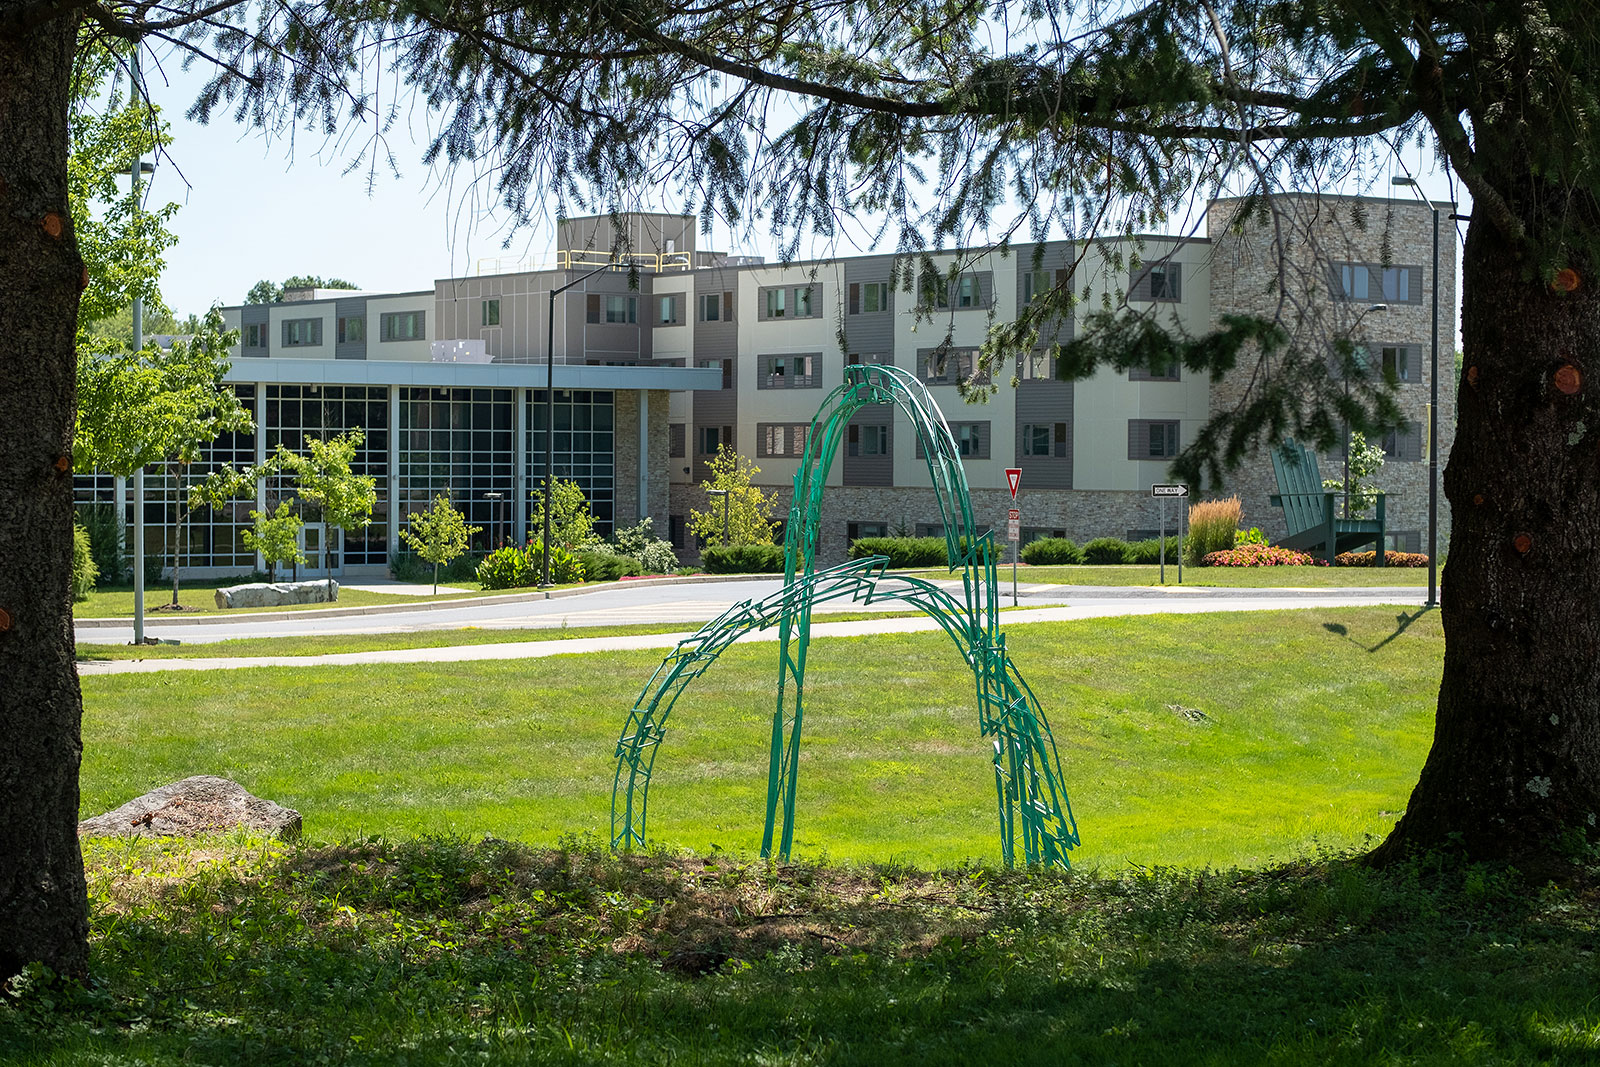 Zirbes sculpture overlooking residence hall